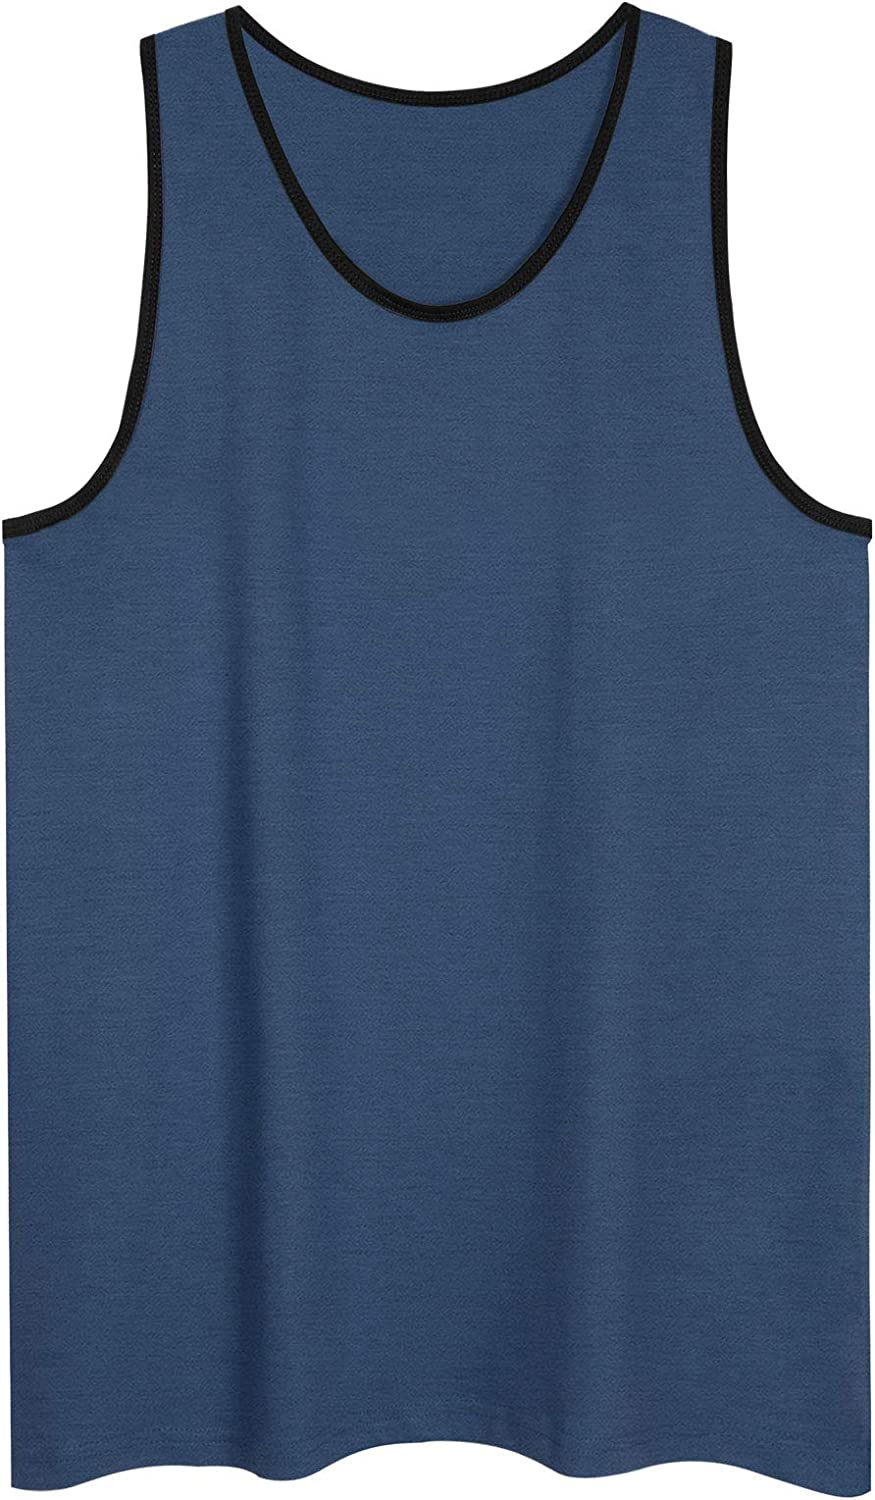 Men's Premium Basic Casual Athletic Sport Jersey Tank Tops Tshirts Work Out Gym